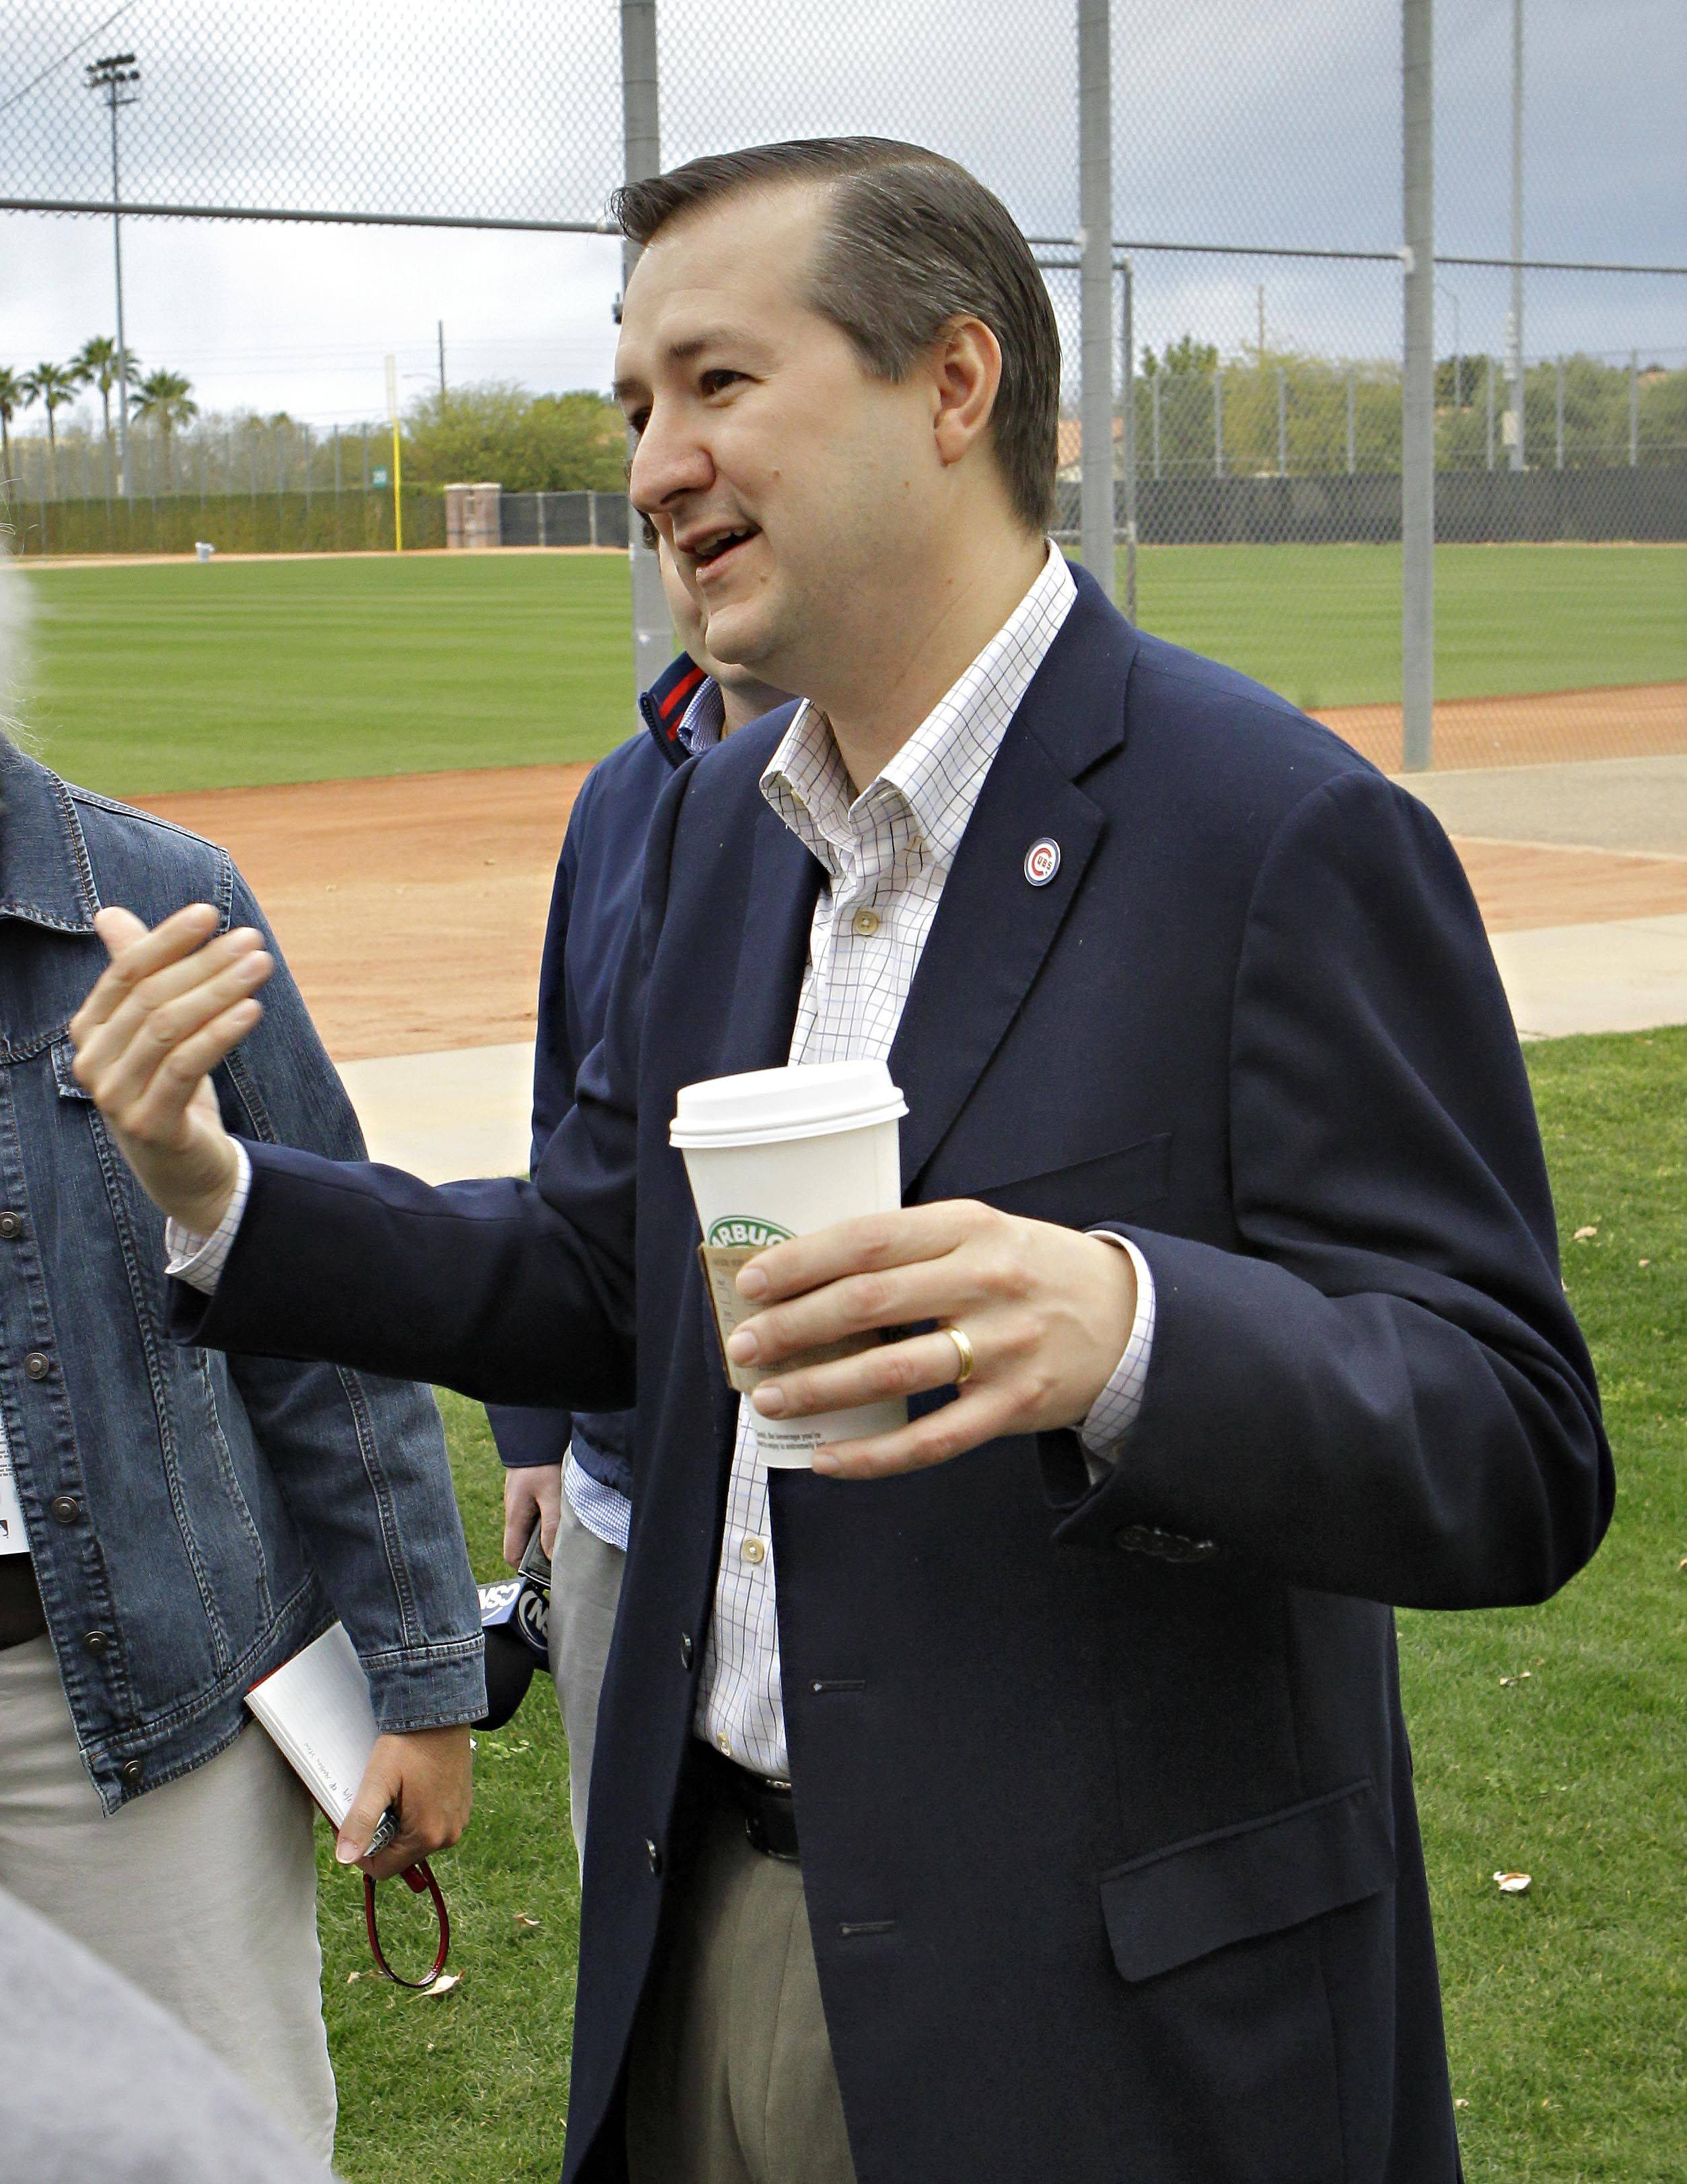 Chicago Cubs owner Tom Ricketts talks with the media Saturday, Feb. 19, 2011 at the Cubs' baseball spring training facility in Mesa, Ariz.